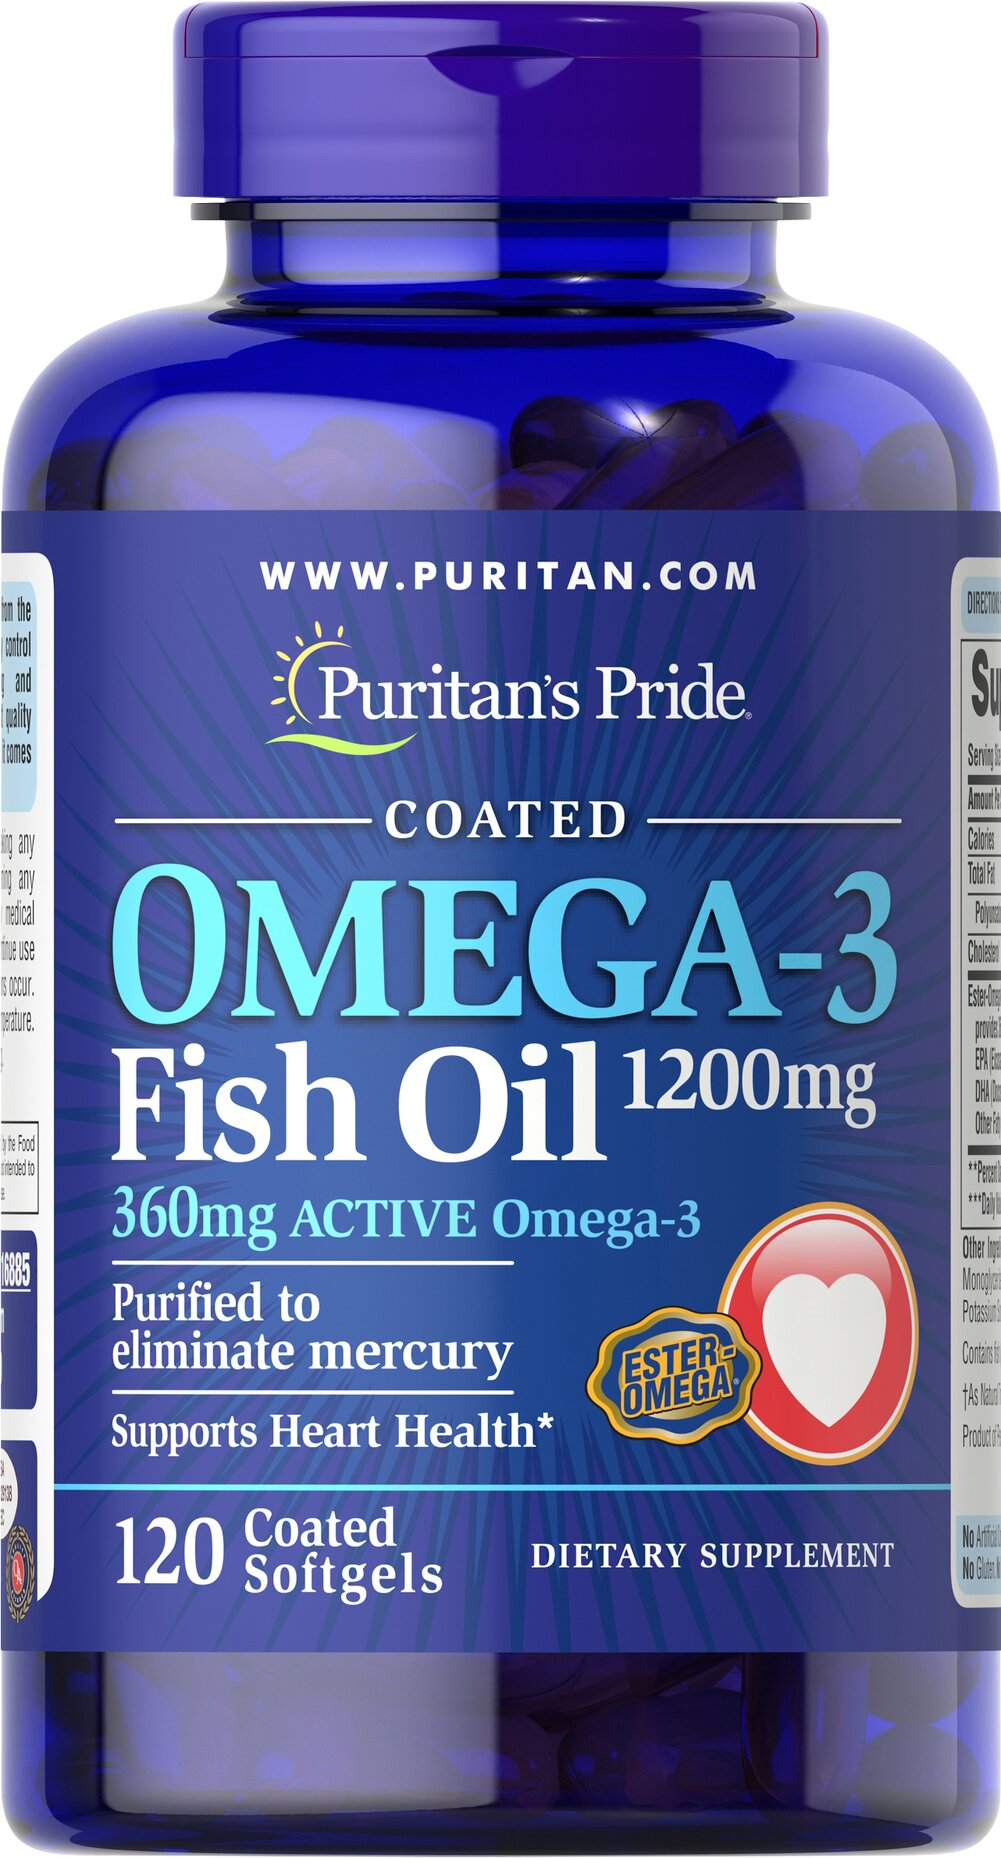 "Omega-3 Fish Oil Coated 1200 mg <p><span></span>Provides 360mg of Total Omega-3 Fatty Acids.</p><p><span></span>Supports heart health.**</p><p><span></span>Purified to eliminate mercury.</p><p>Our Ester-Omega® Omega-3 Fish Oil provides 360mg of active Omega-3, consisting of EPA, DHA and other fatty acids. EPA & DHA fatty acids are ""good"" fats that can help to balance the ""bad fats"" in your diet,"